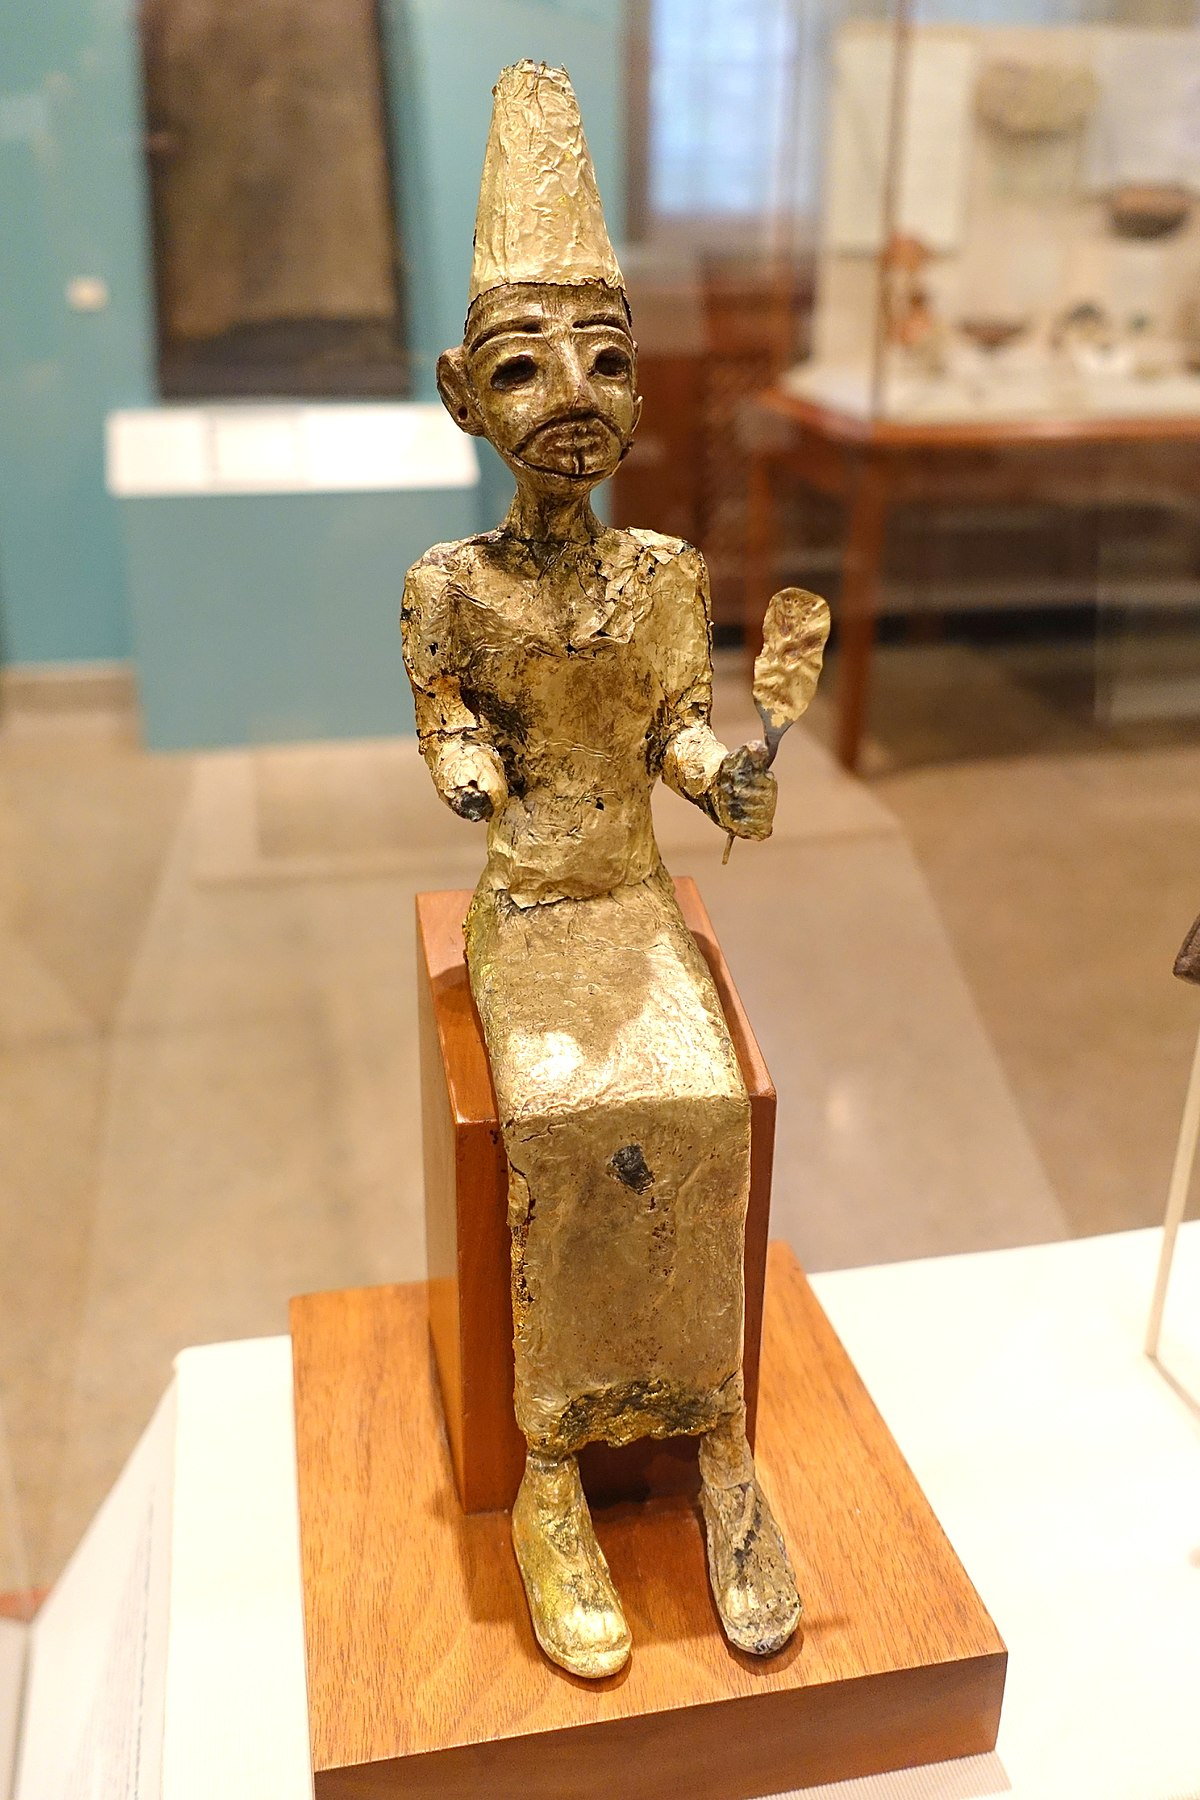 El, the Canaanite creator deity, Megiddo, Stratum VII, Late Bronze II, 1400-1200 BC, bronze with gold leaf - Oriental Institute Museum, University of Chicago - DSC07734.JPG